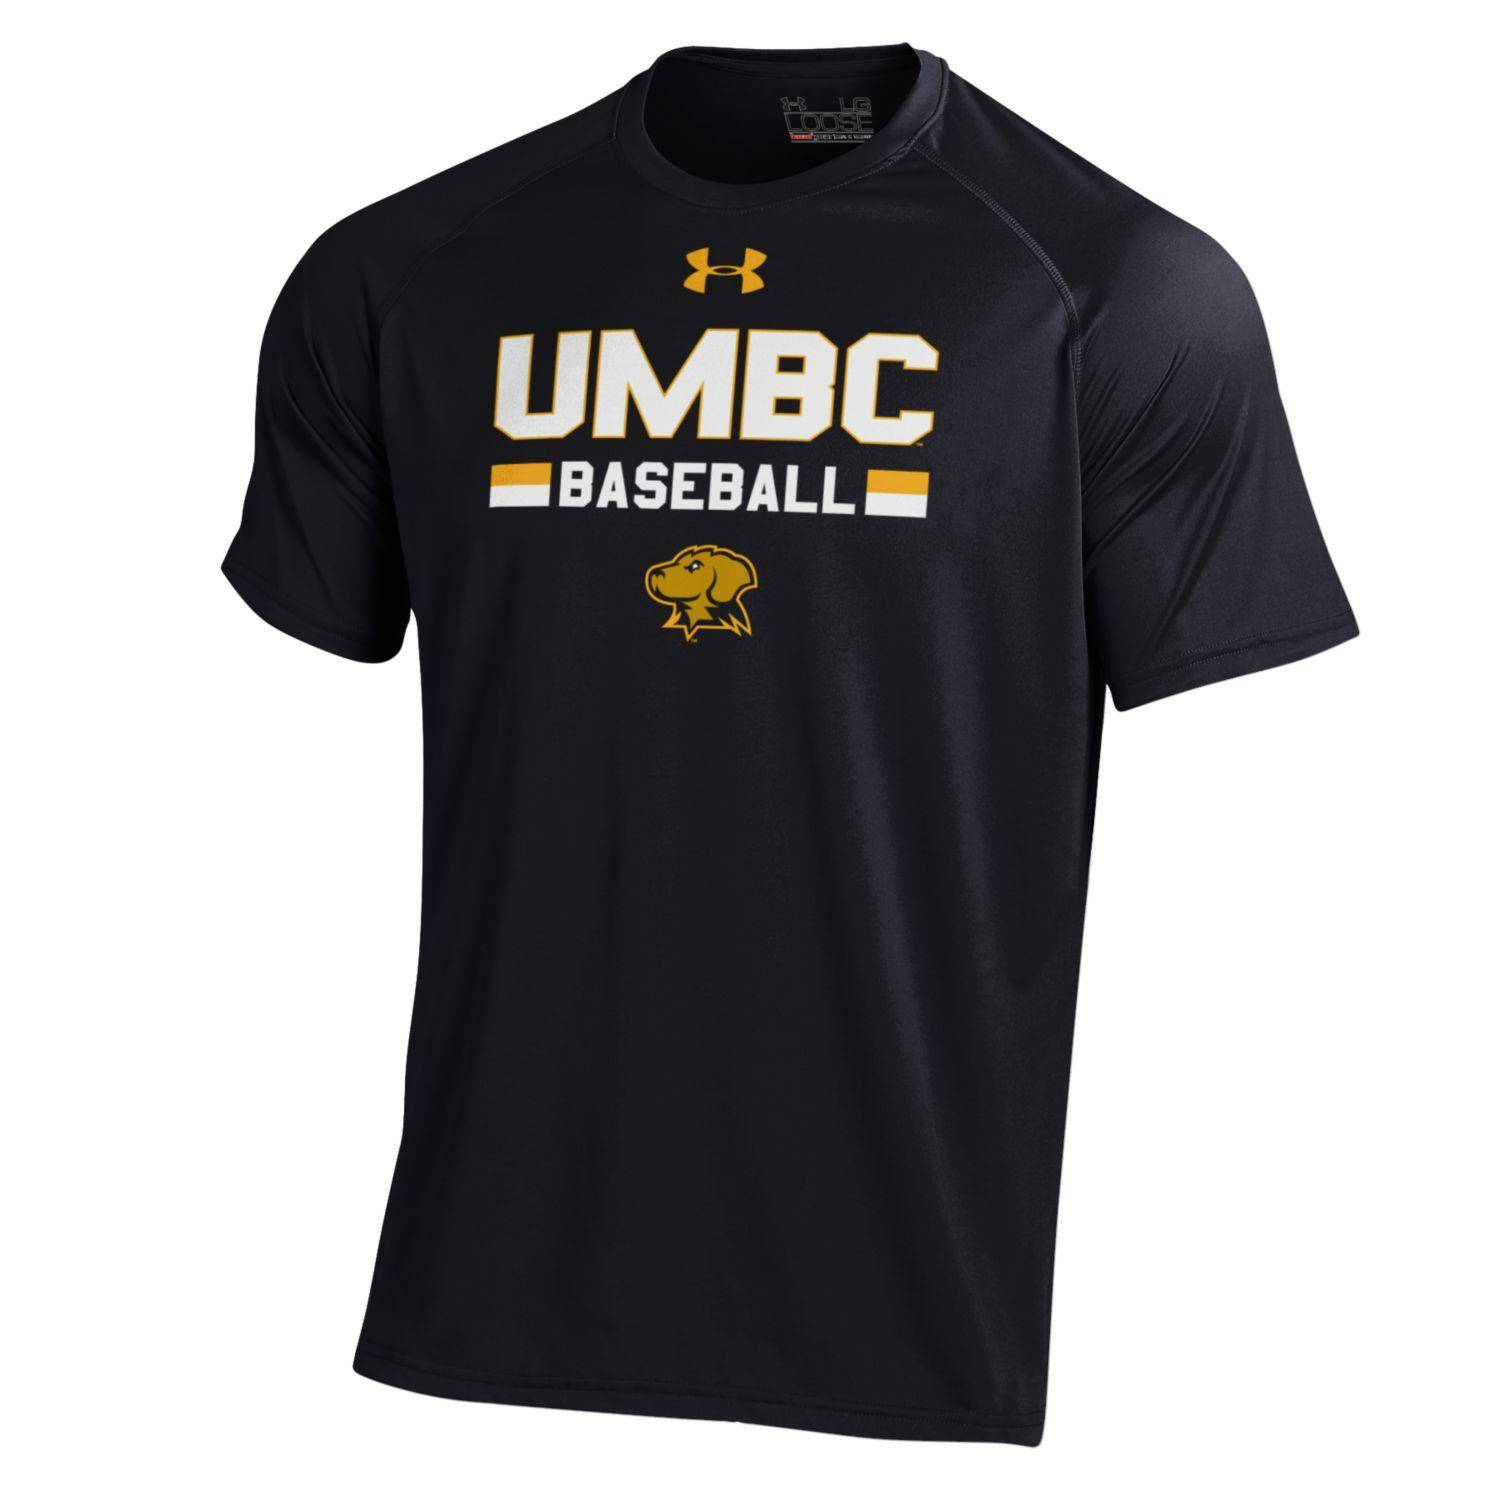 Image For BASEBALL UNDER ARMOUR UMBC NUTECH T-SHIRT